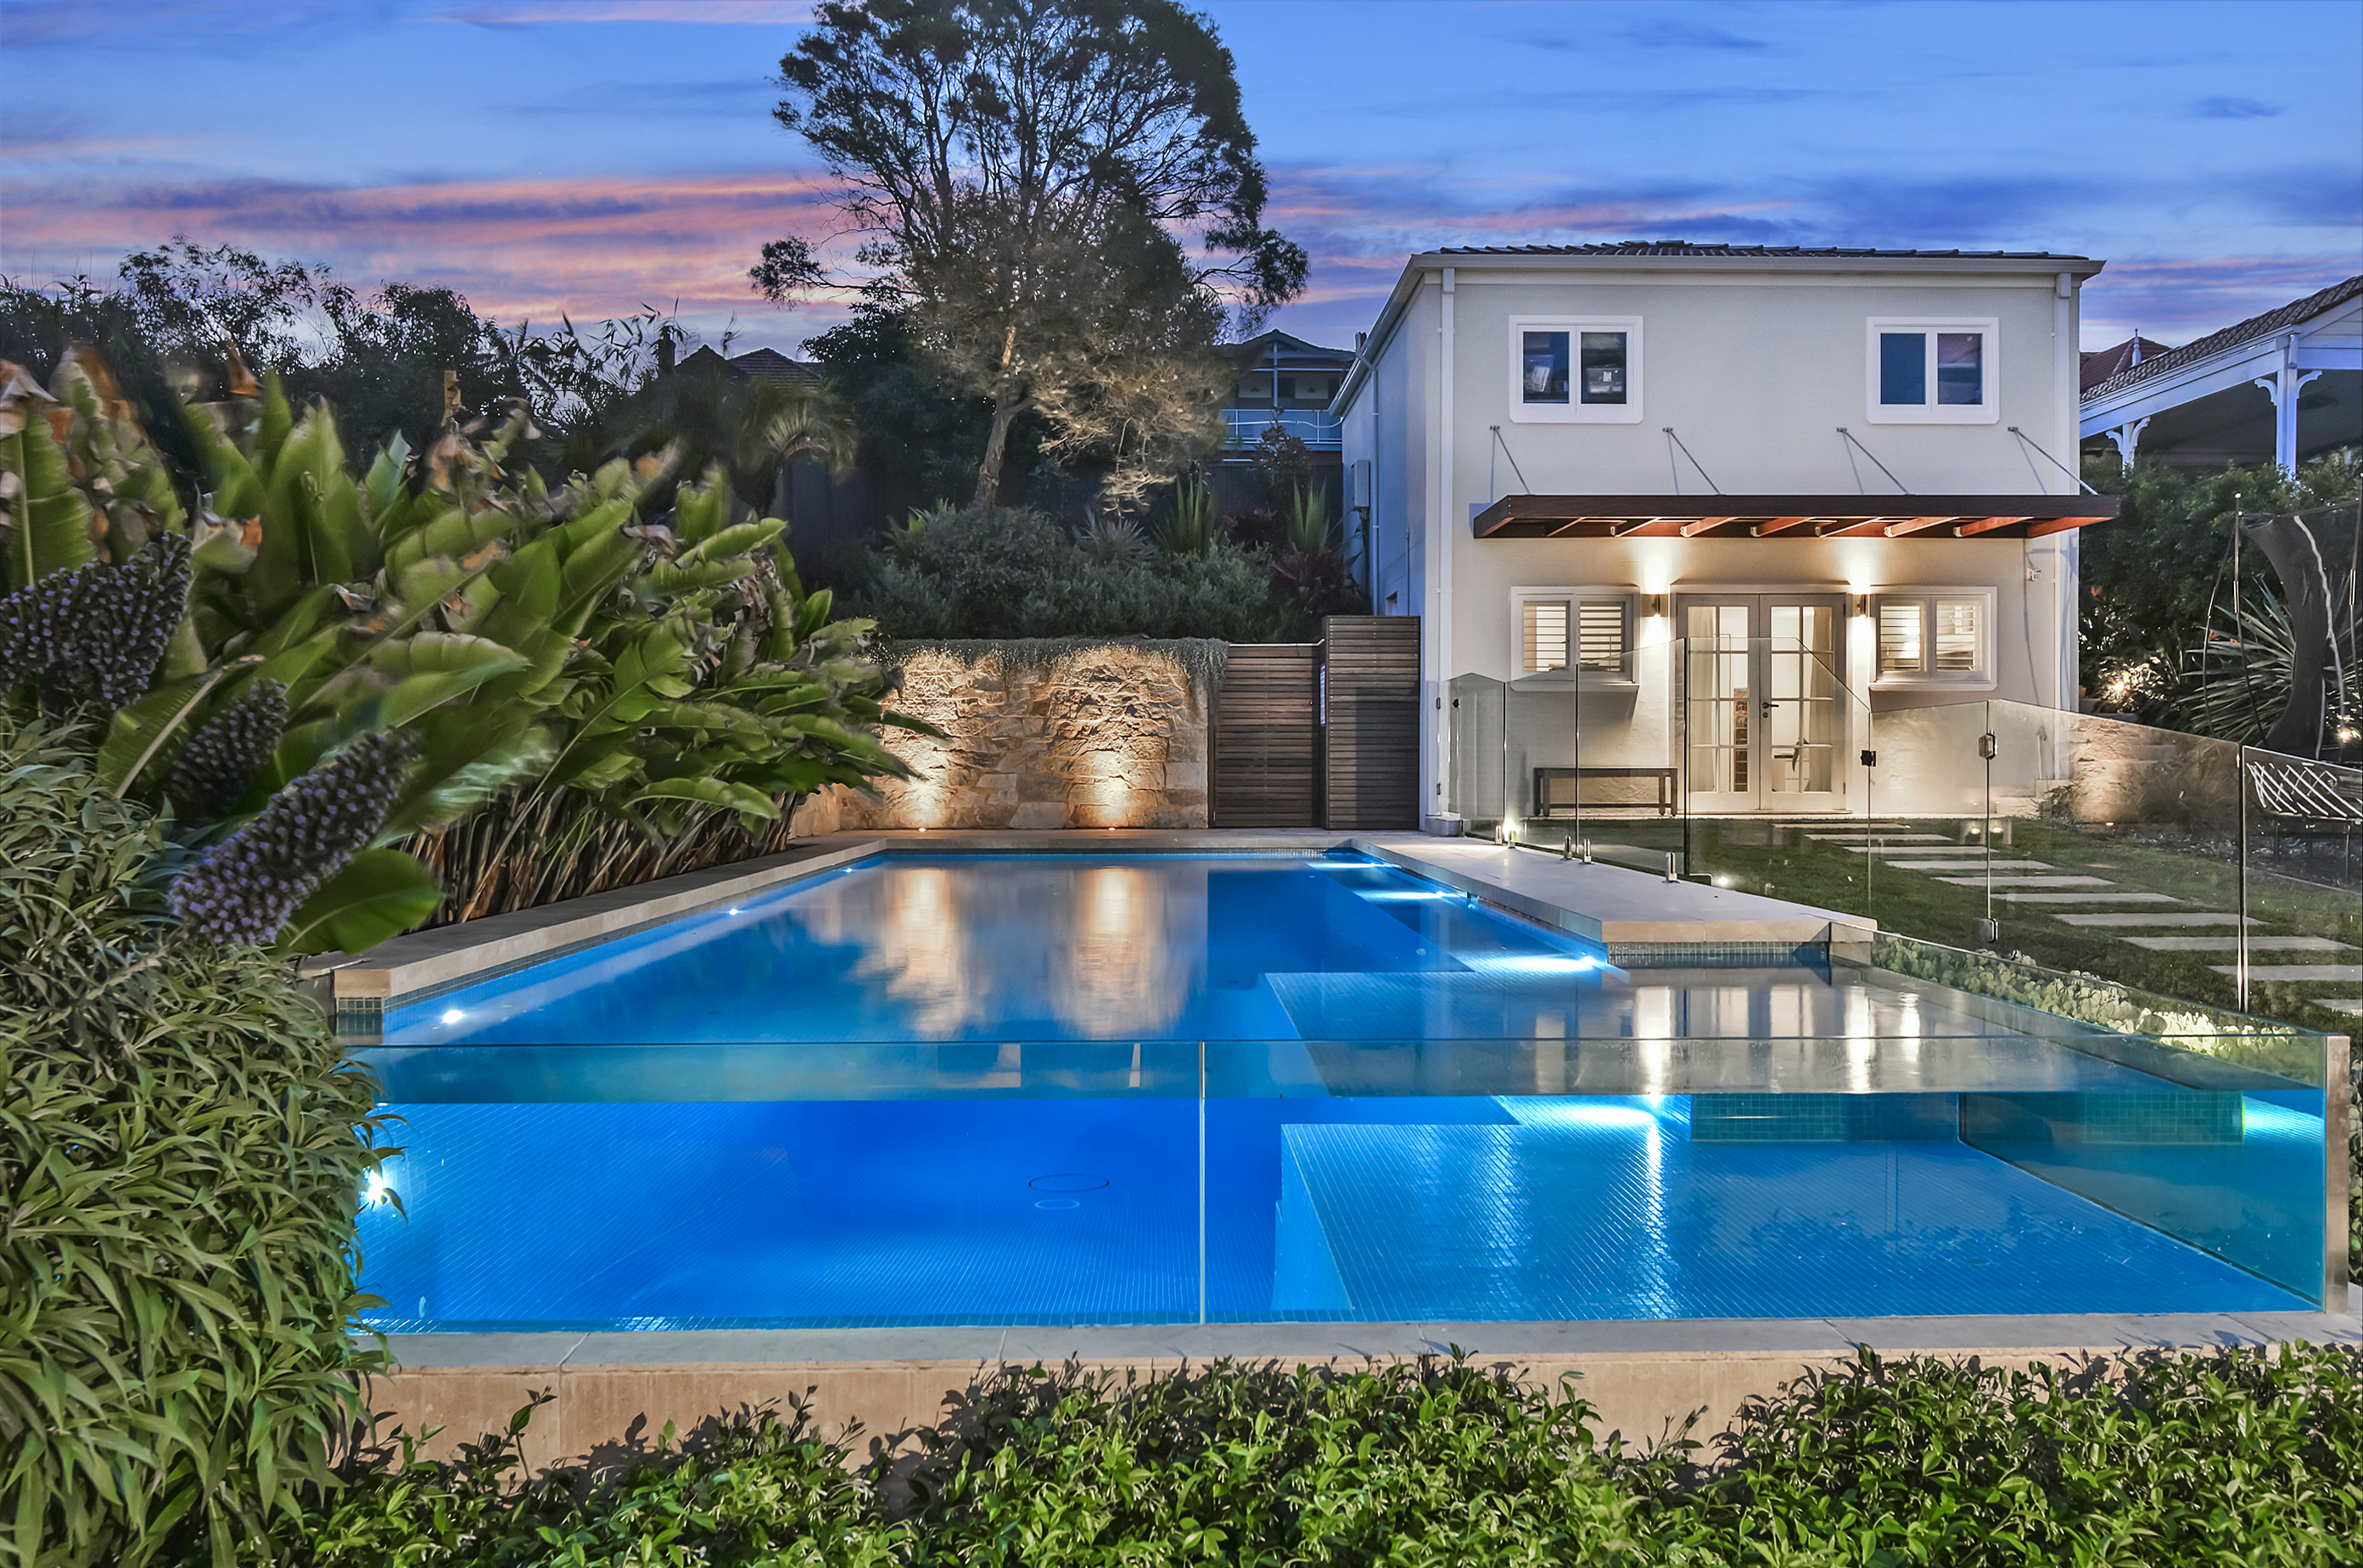 Pool builders sydney landscaper sydney interlink pools for Pool design sydney